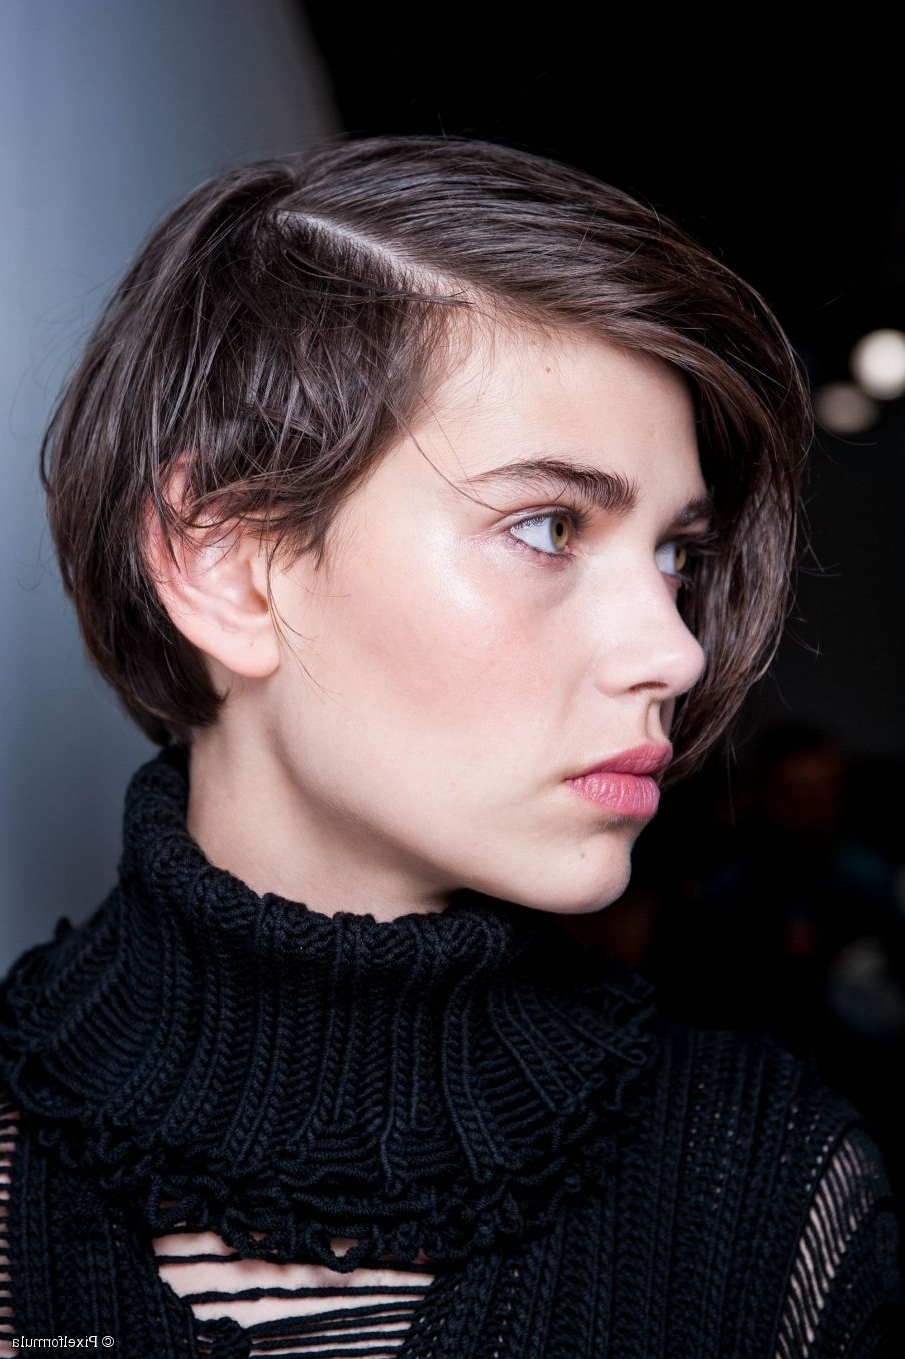 Sleek, Short Hair Tutorial: Try A Deep Side Part Regarding Popular Short Choppy Side Parted Pixie Hairstyles (View 18 of 20)